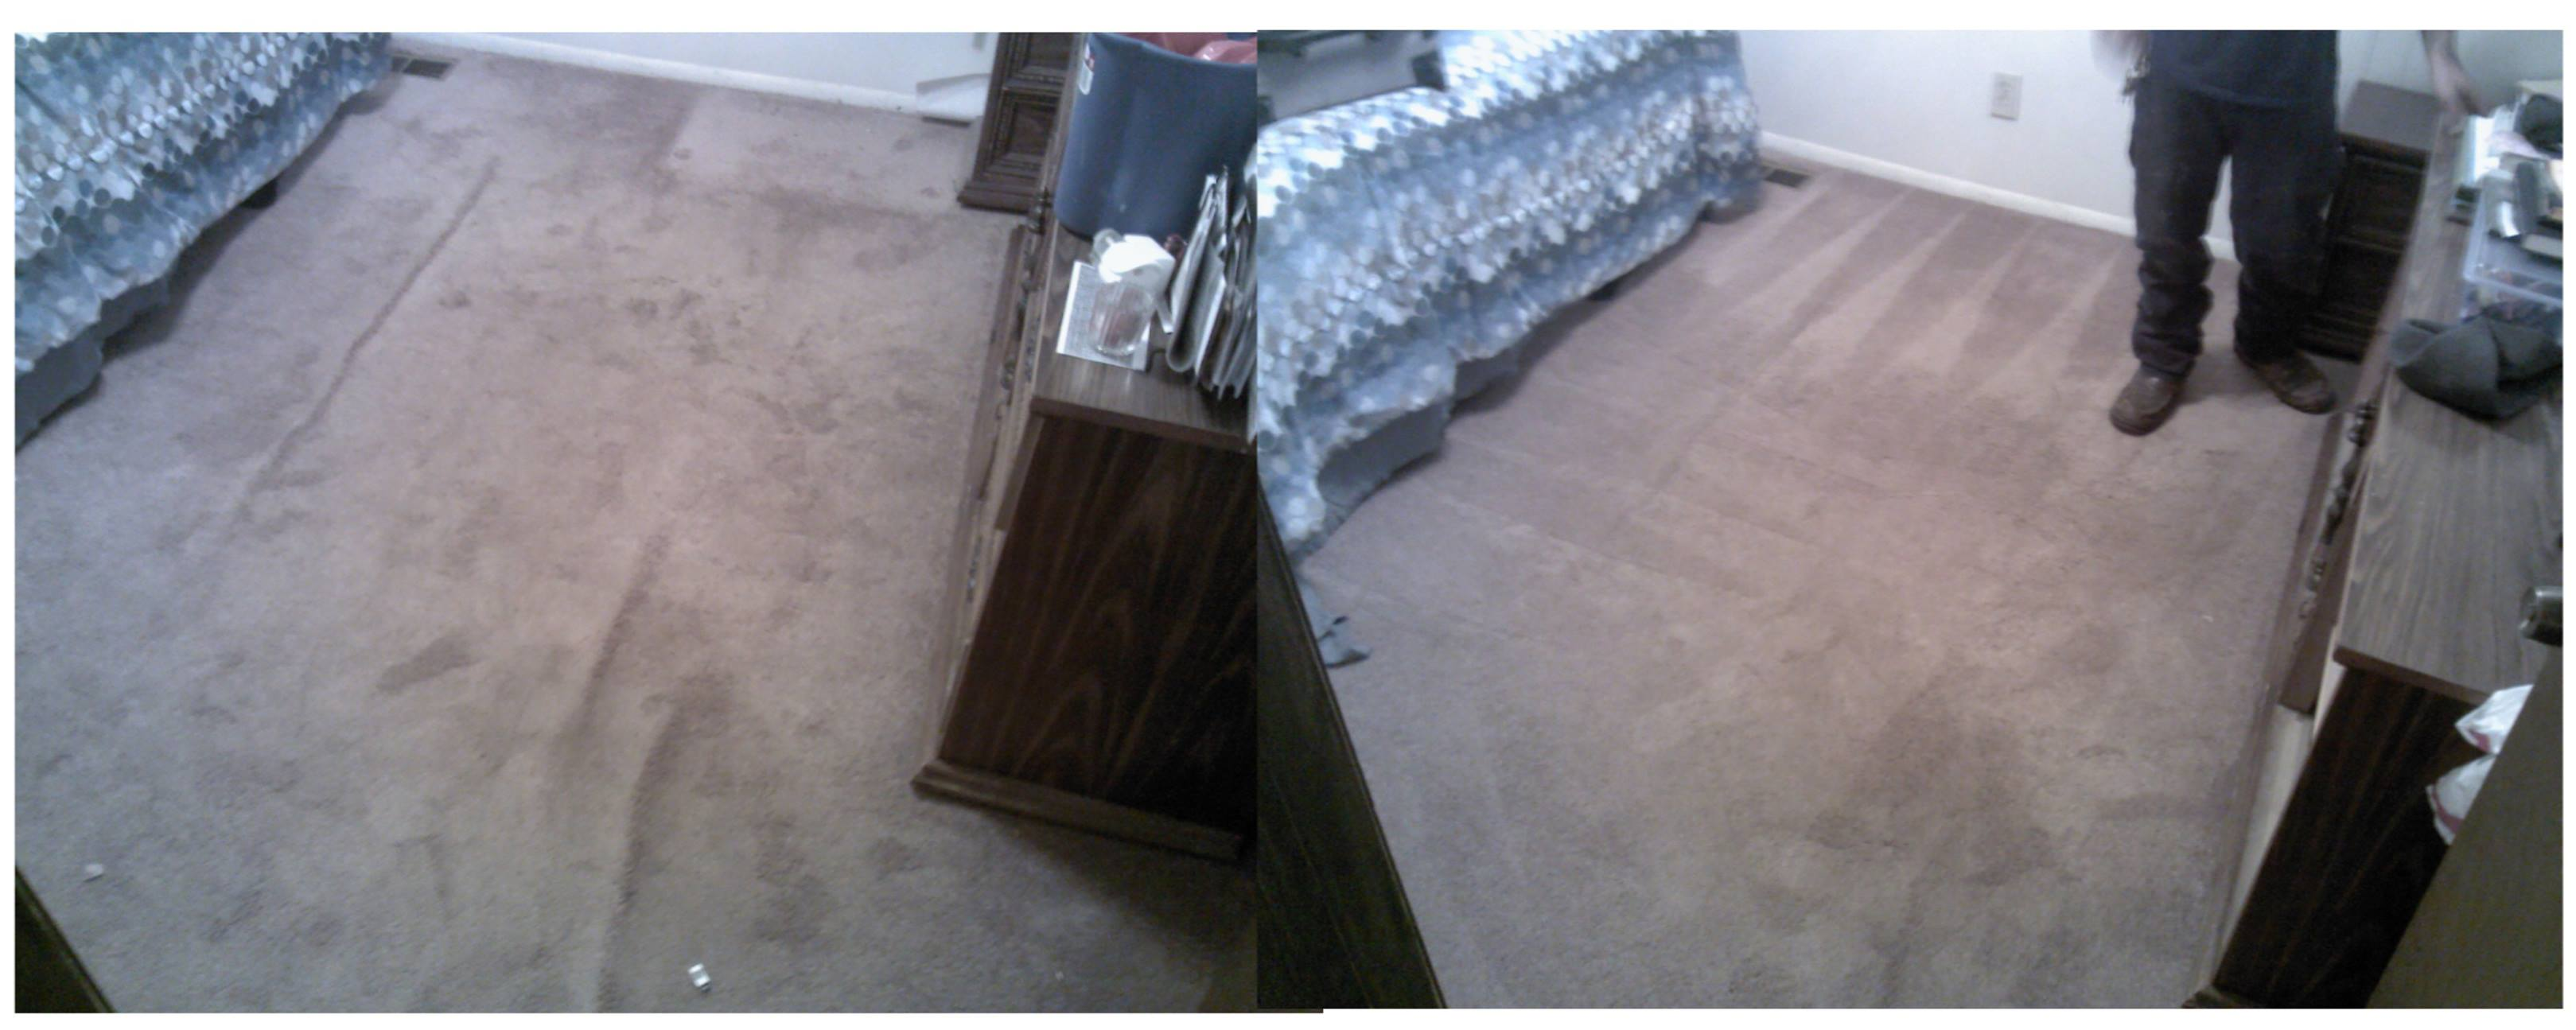 sofa cleaning atlanta friheten bed with chaise review carpet  servicemaster clean